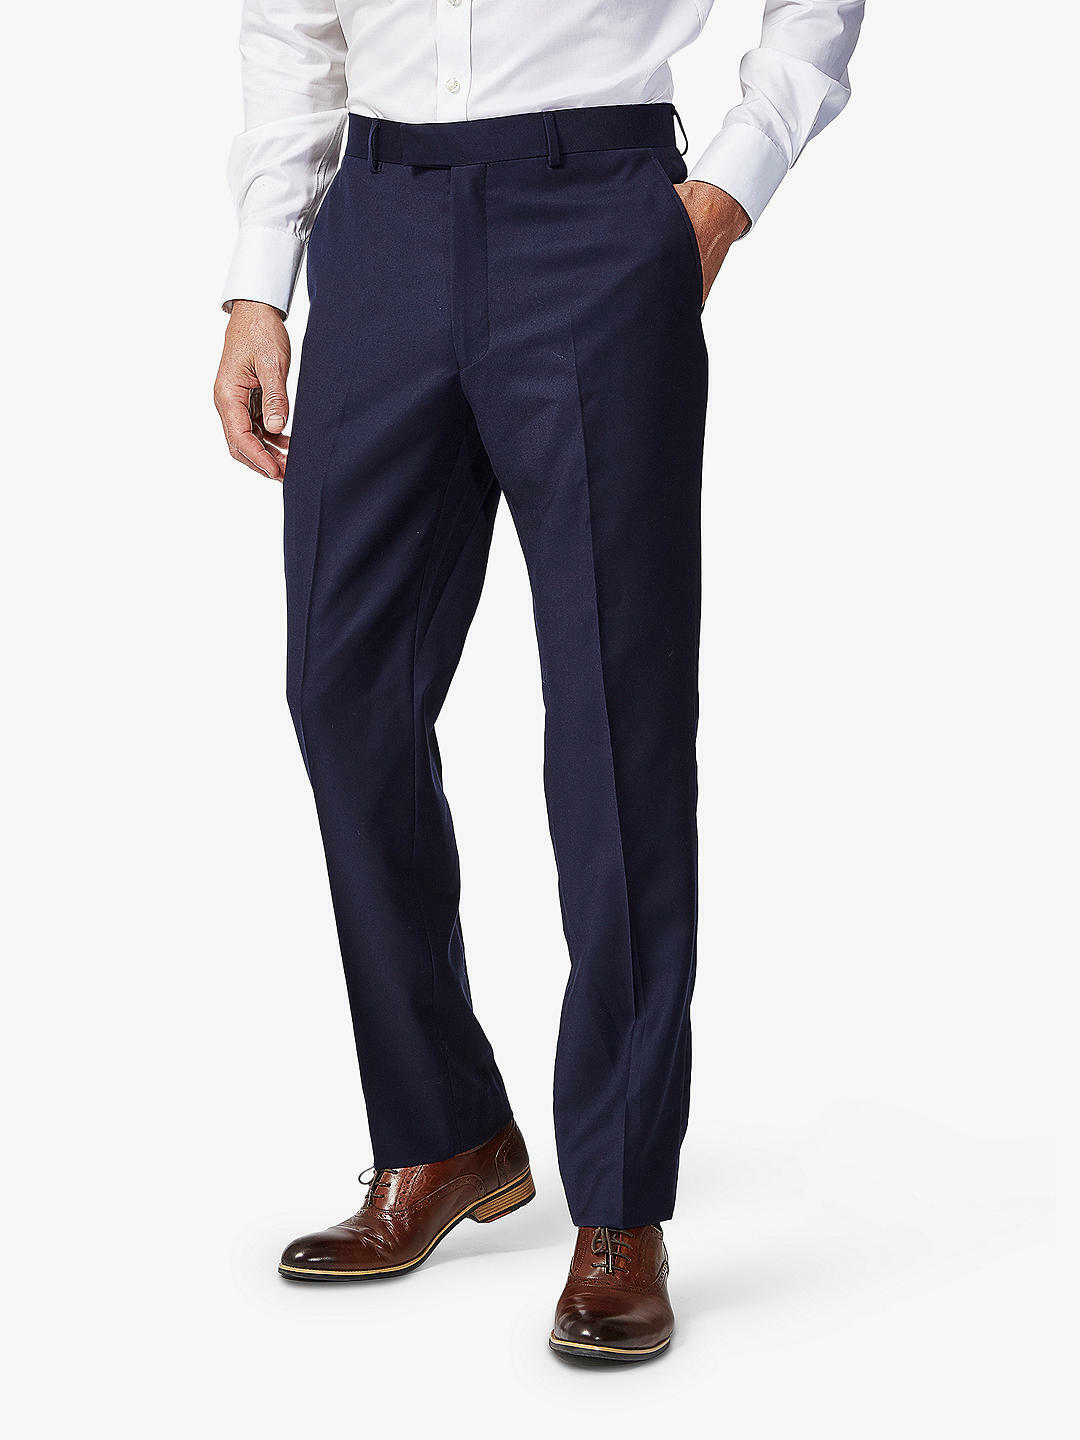 Chester by Chester Barrie Birdseye Weave Suit Trousers, Midnight bluee Size 40R